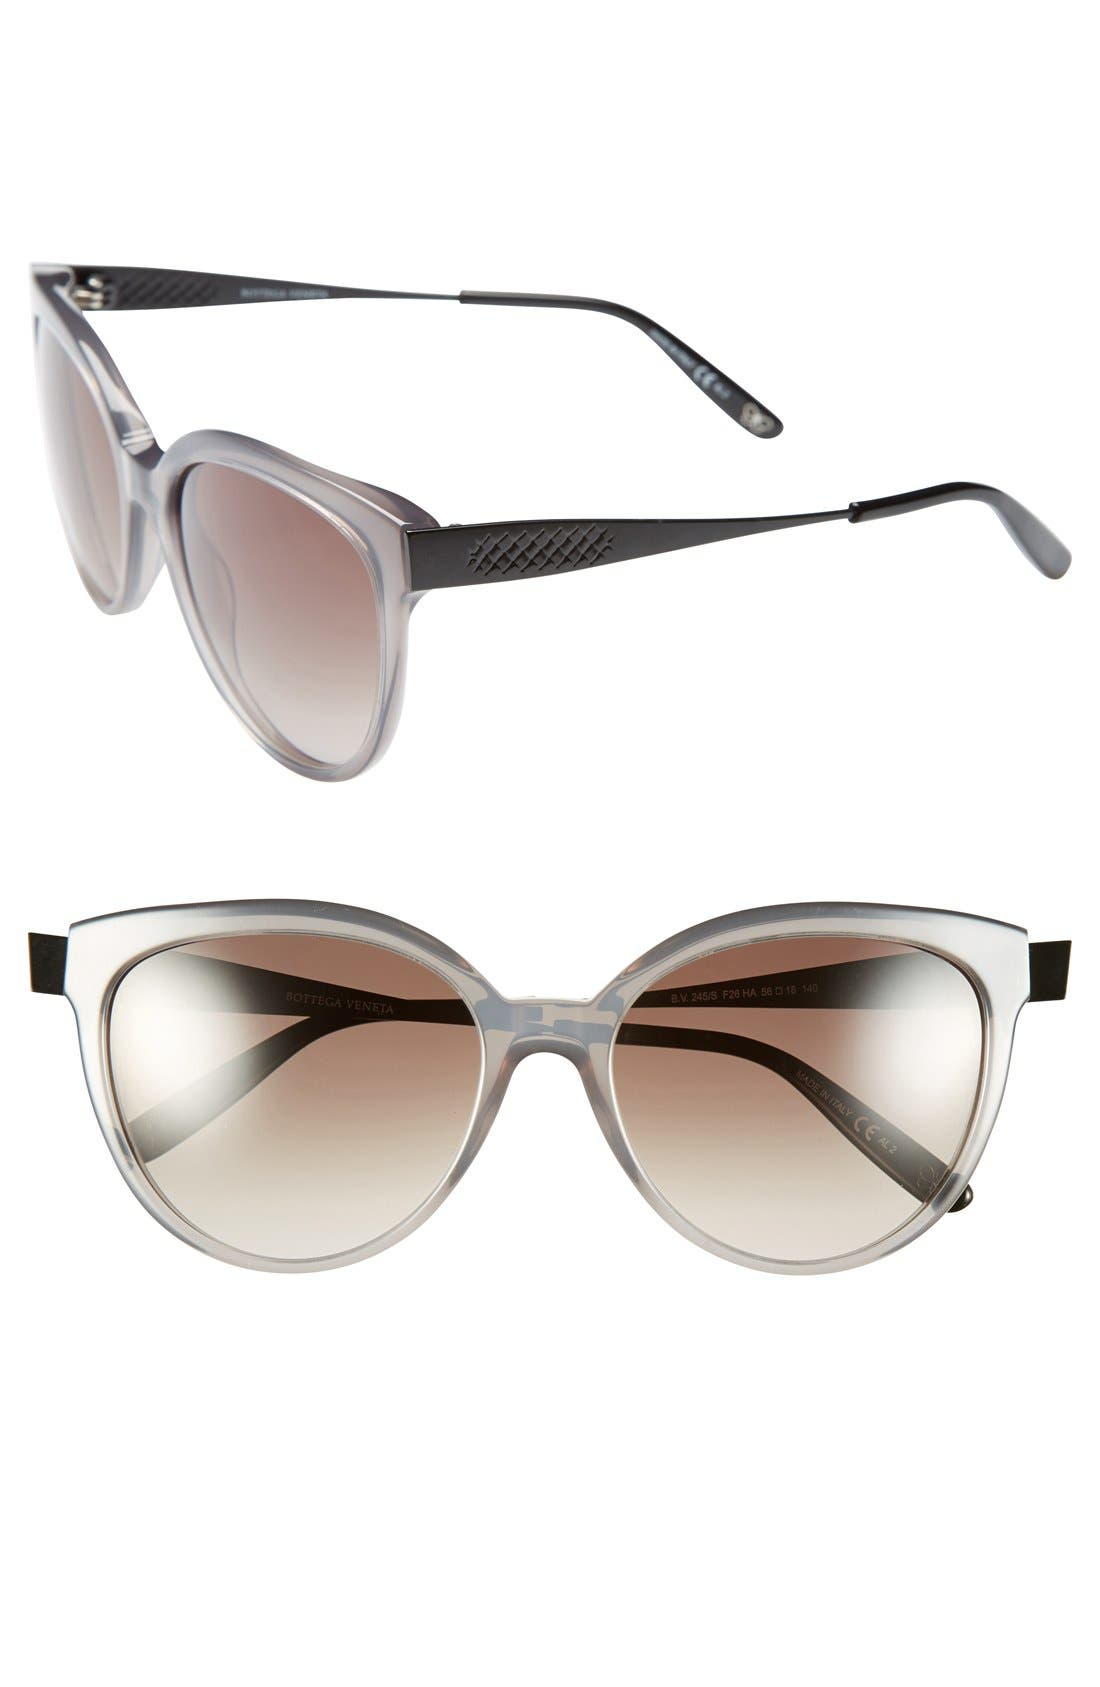 Main Image - Bottega Veneta 56mm Retro Sunglasses